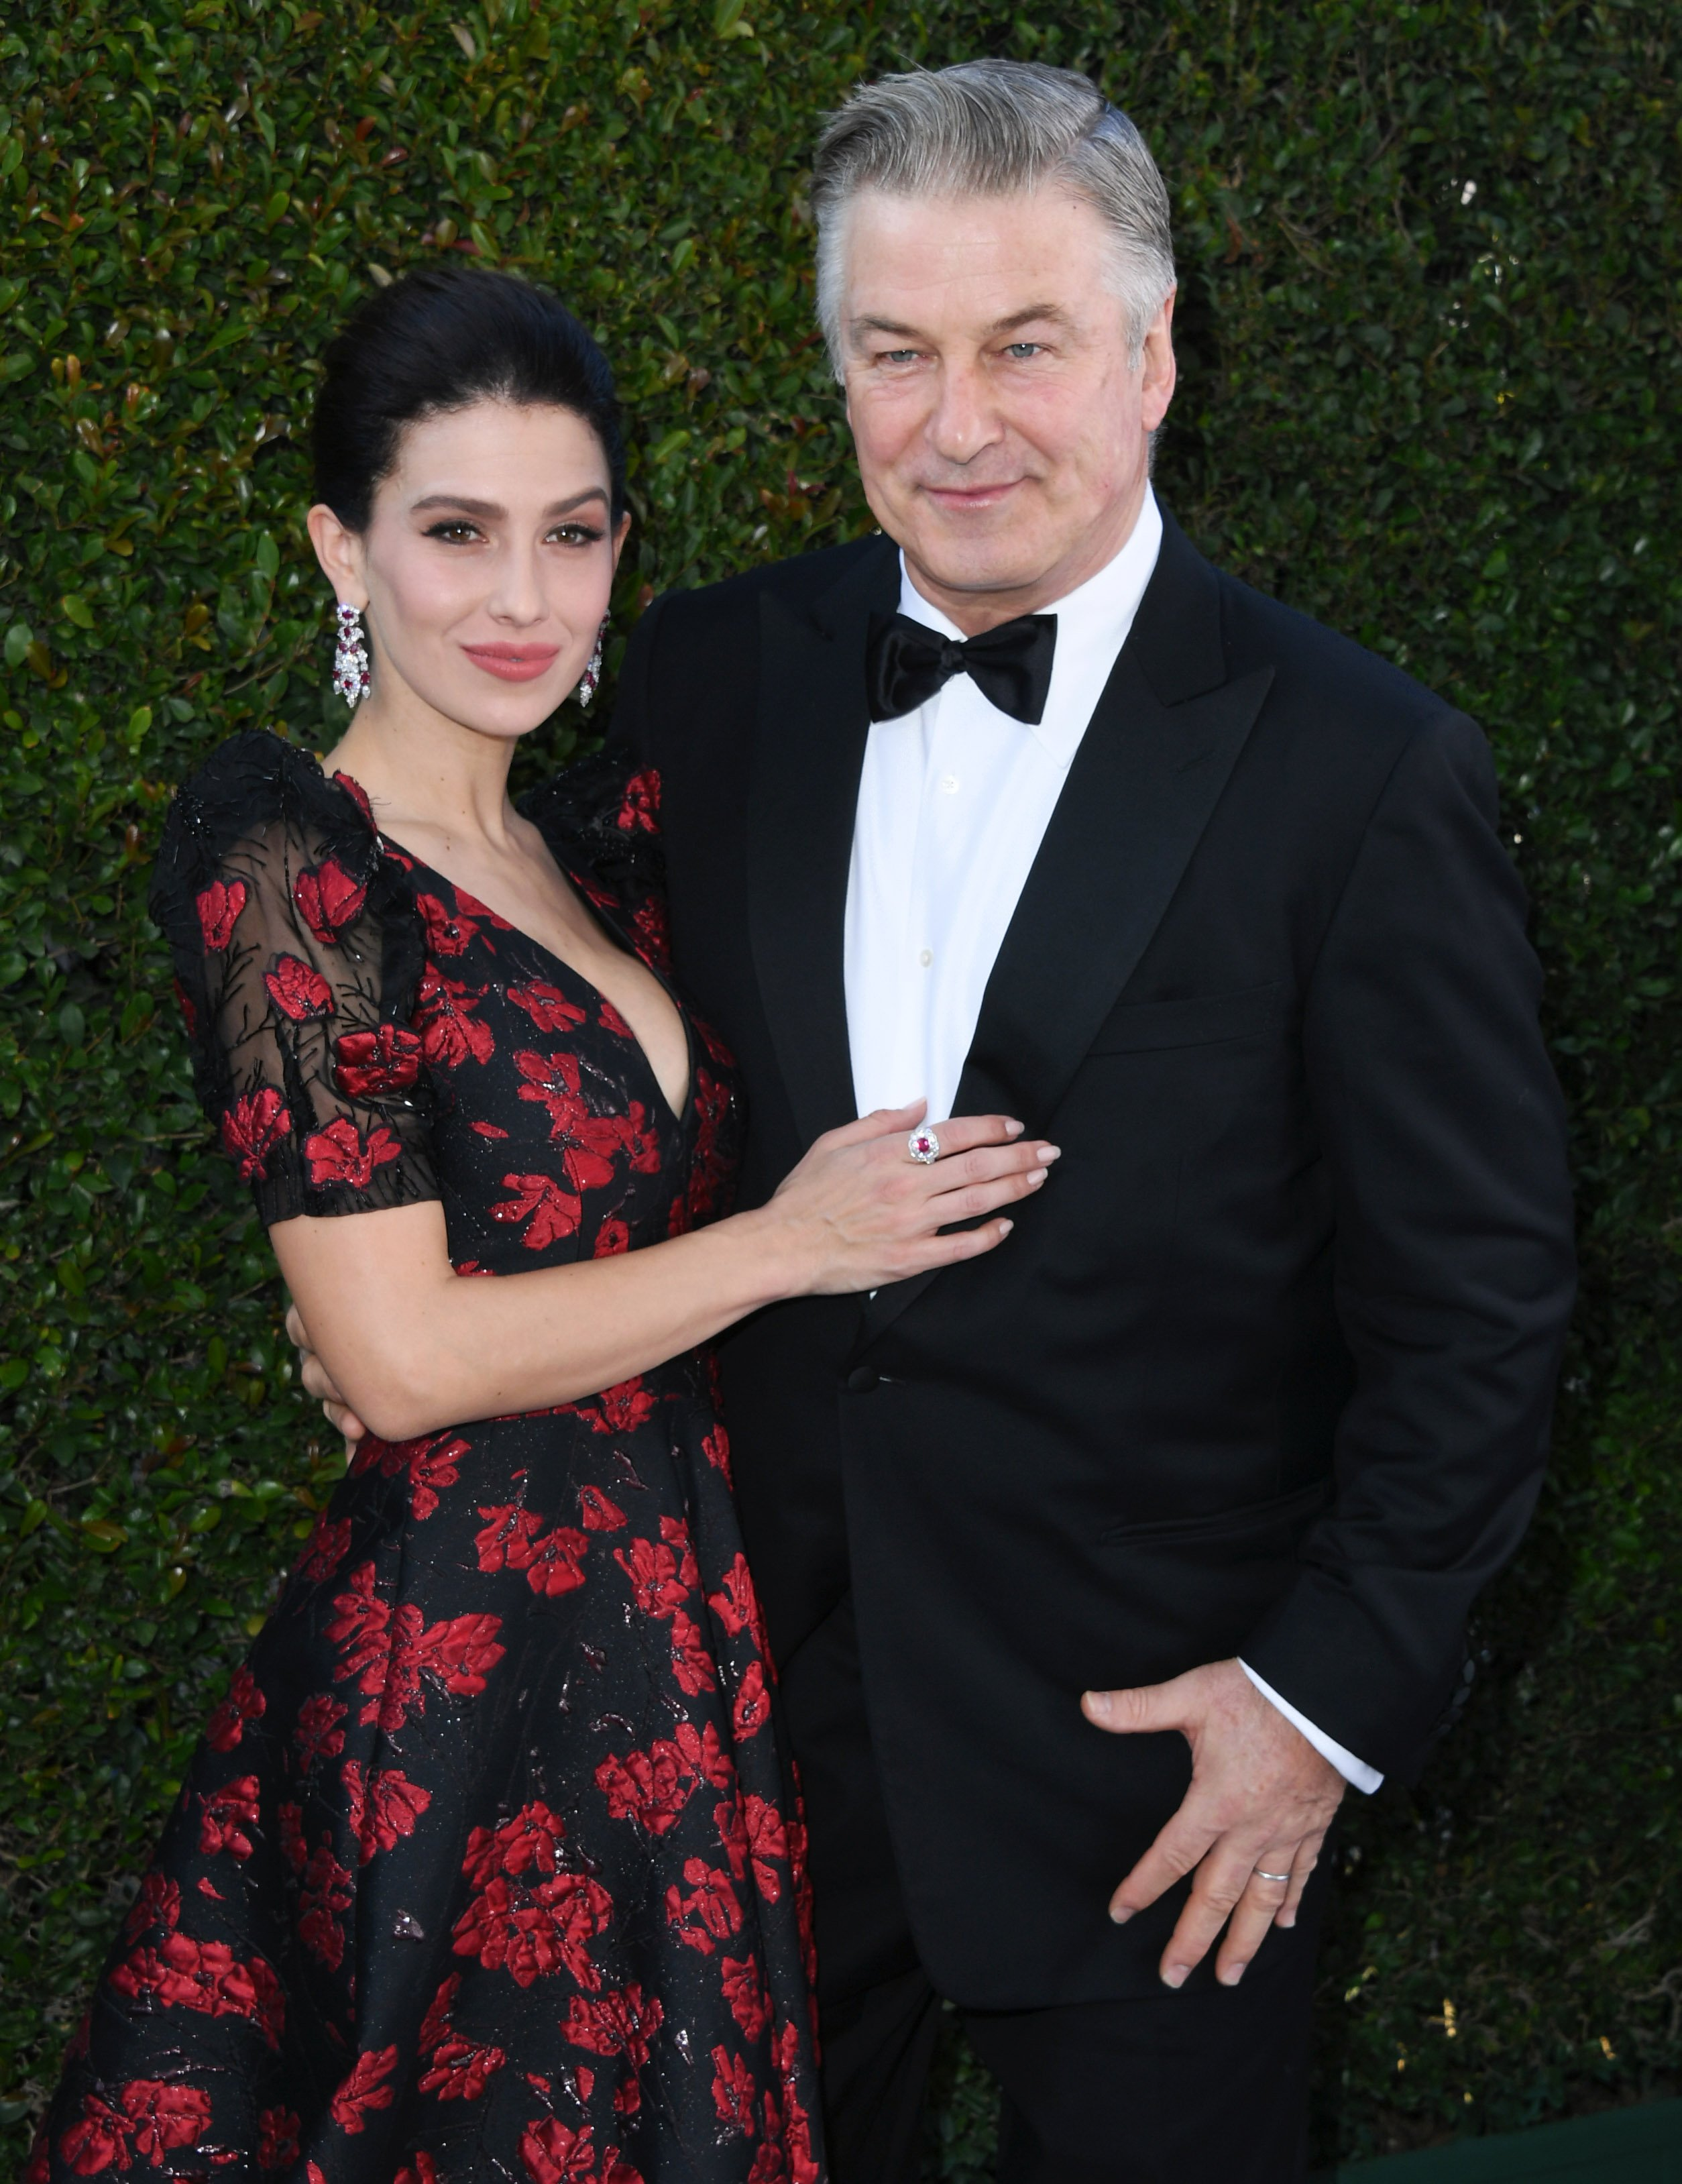 Hilaria Baldwin and Alec Baldwin attend 25th Annual Screen Actors Guild Awards at The Shrine Auditorium on January 27, 2019, in Los Angeles, California. | Photo: Getty Images